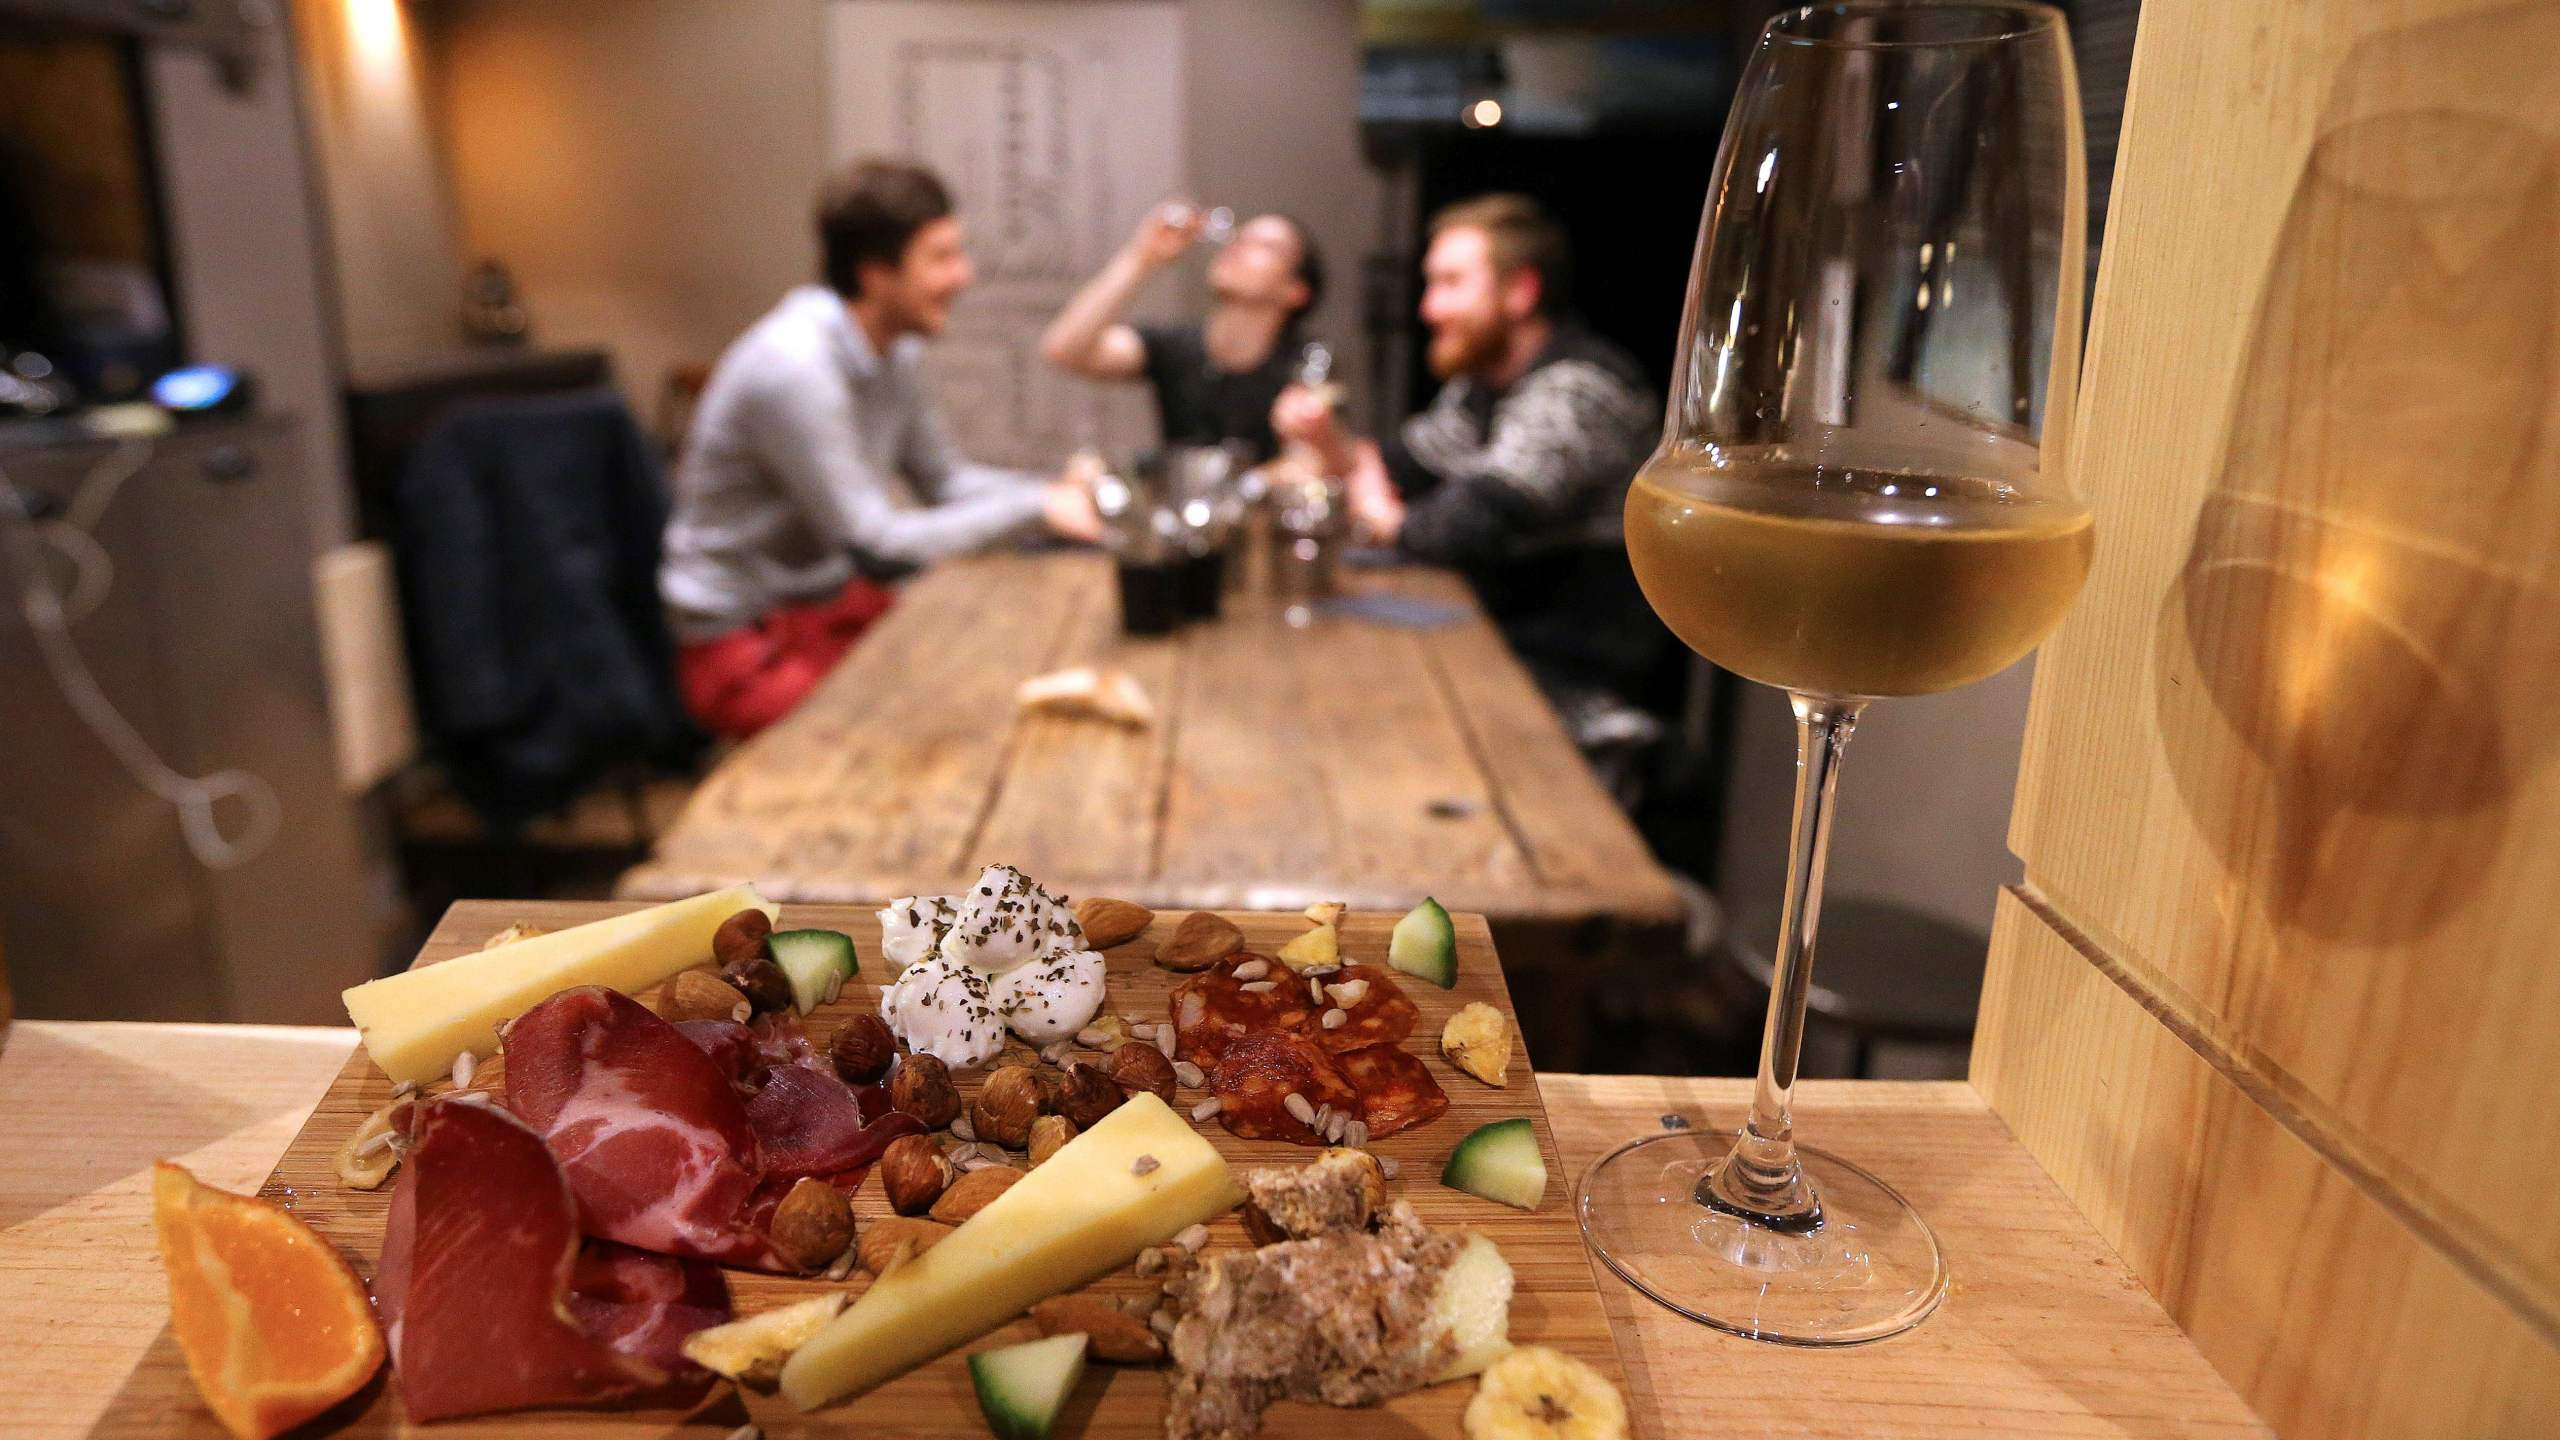 A glass of champagne is served with cheese and ham in Reims, northeastern France, on Dec. 20, 2016. (Credit: FRANCOIS NASCIMBENI/AFP via Getty Images)